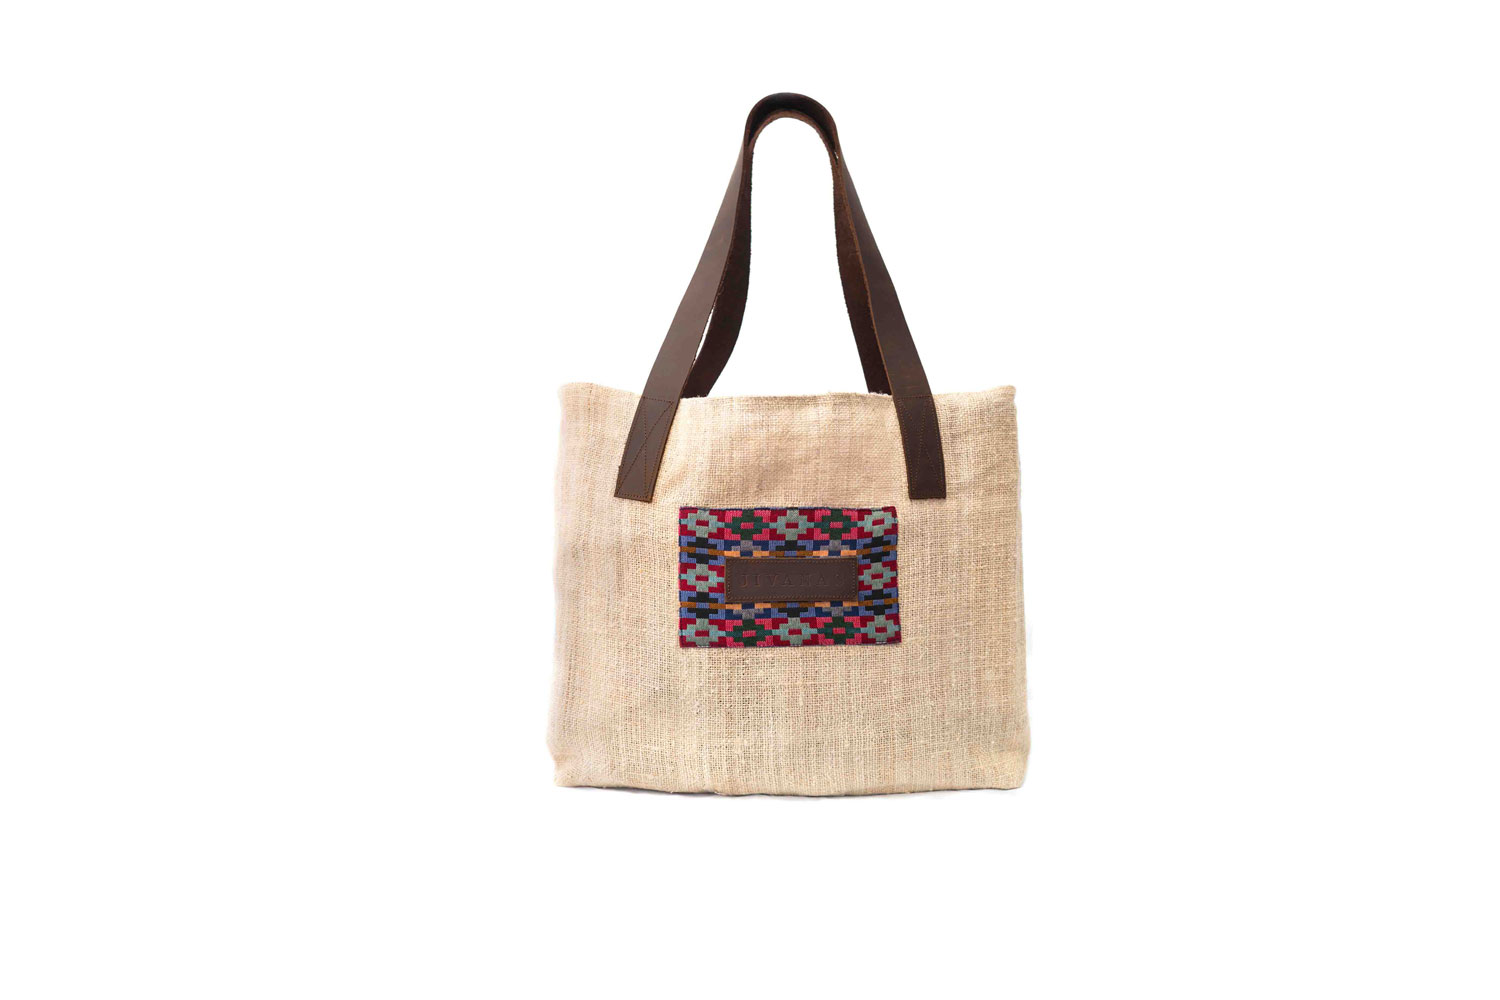 tote-feature-3.jpg